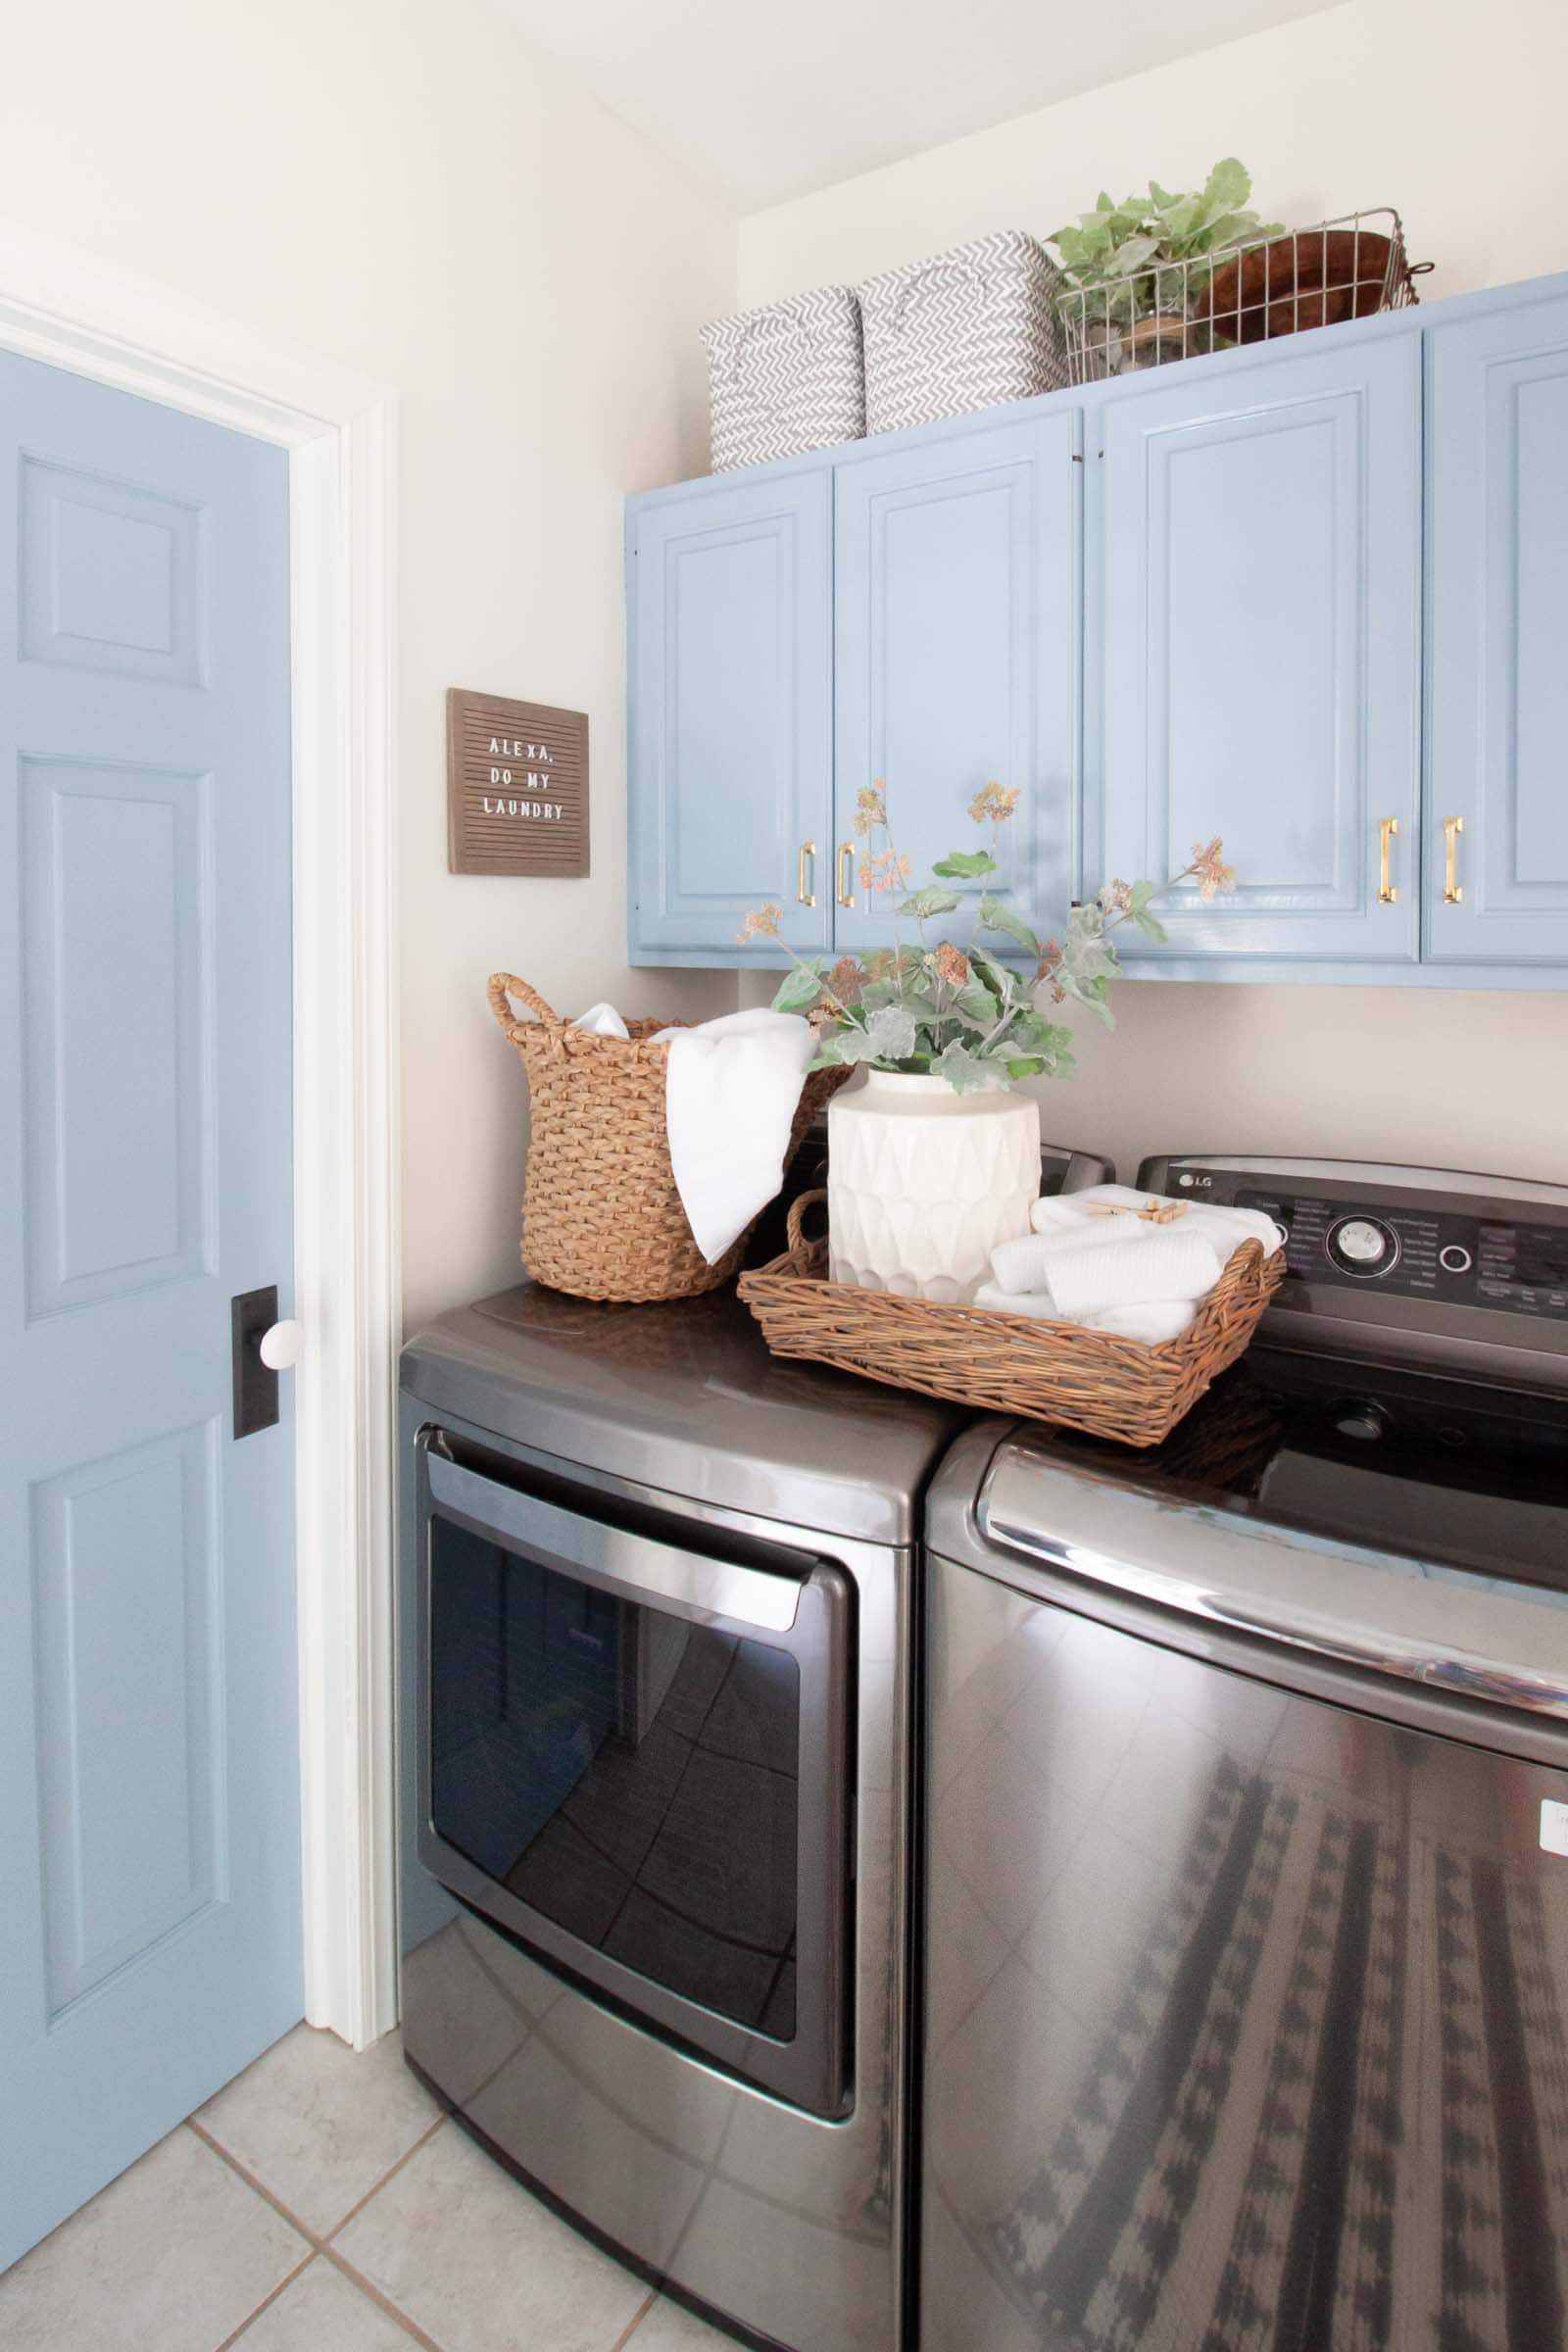 blue laundry room cabinets and blue interior door in laundry room